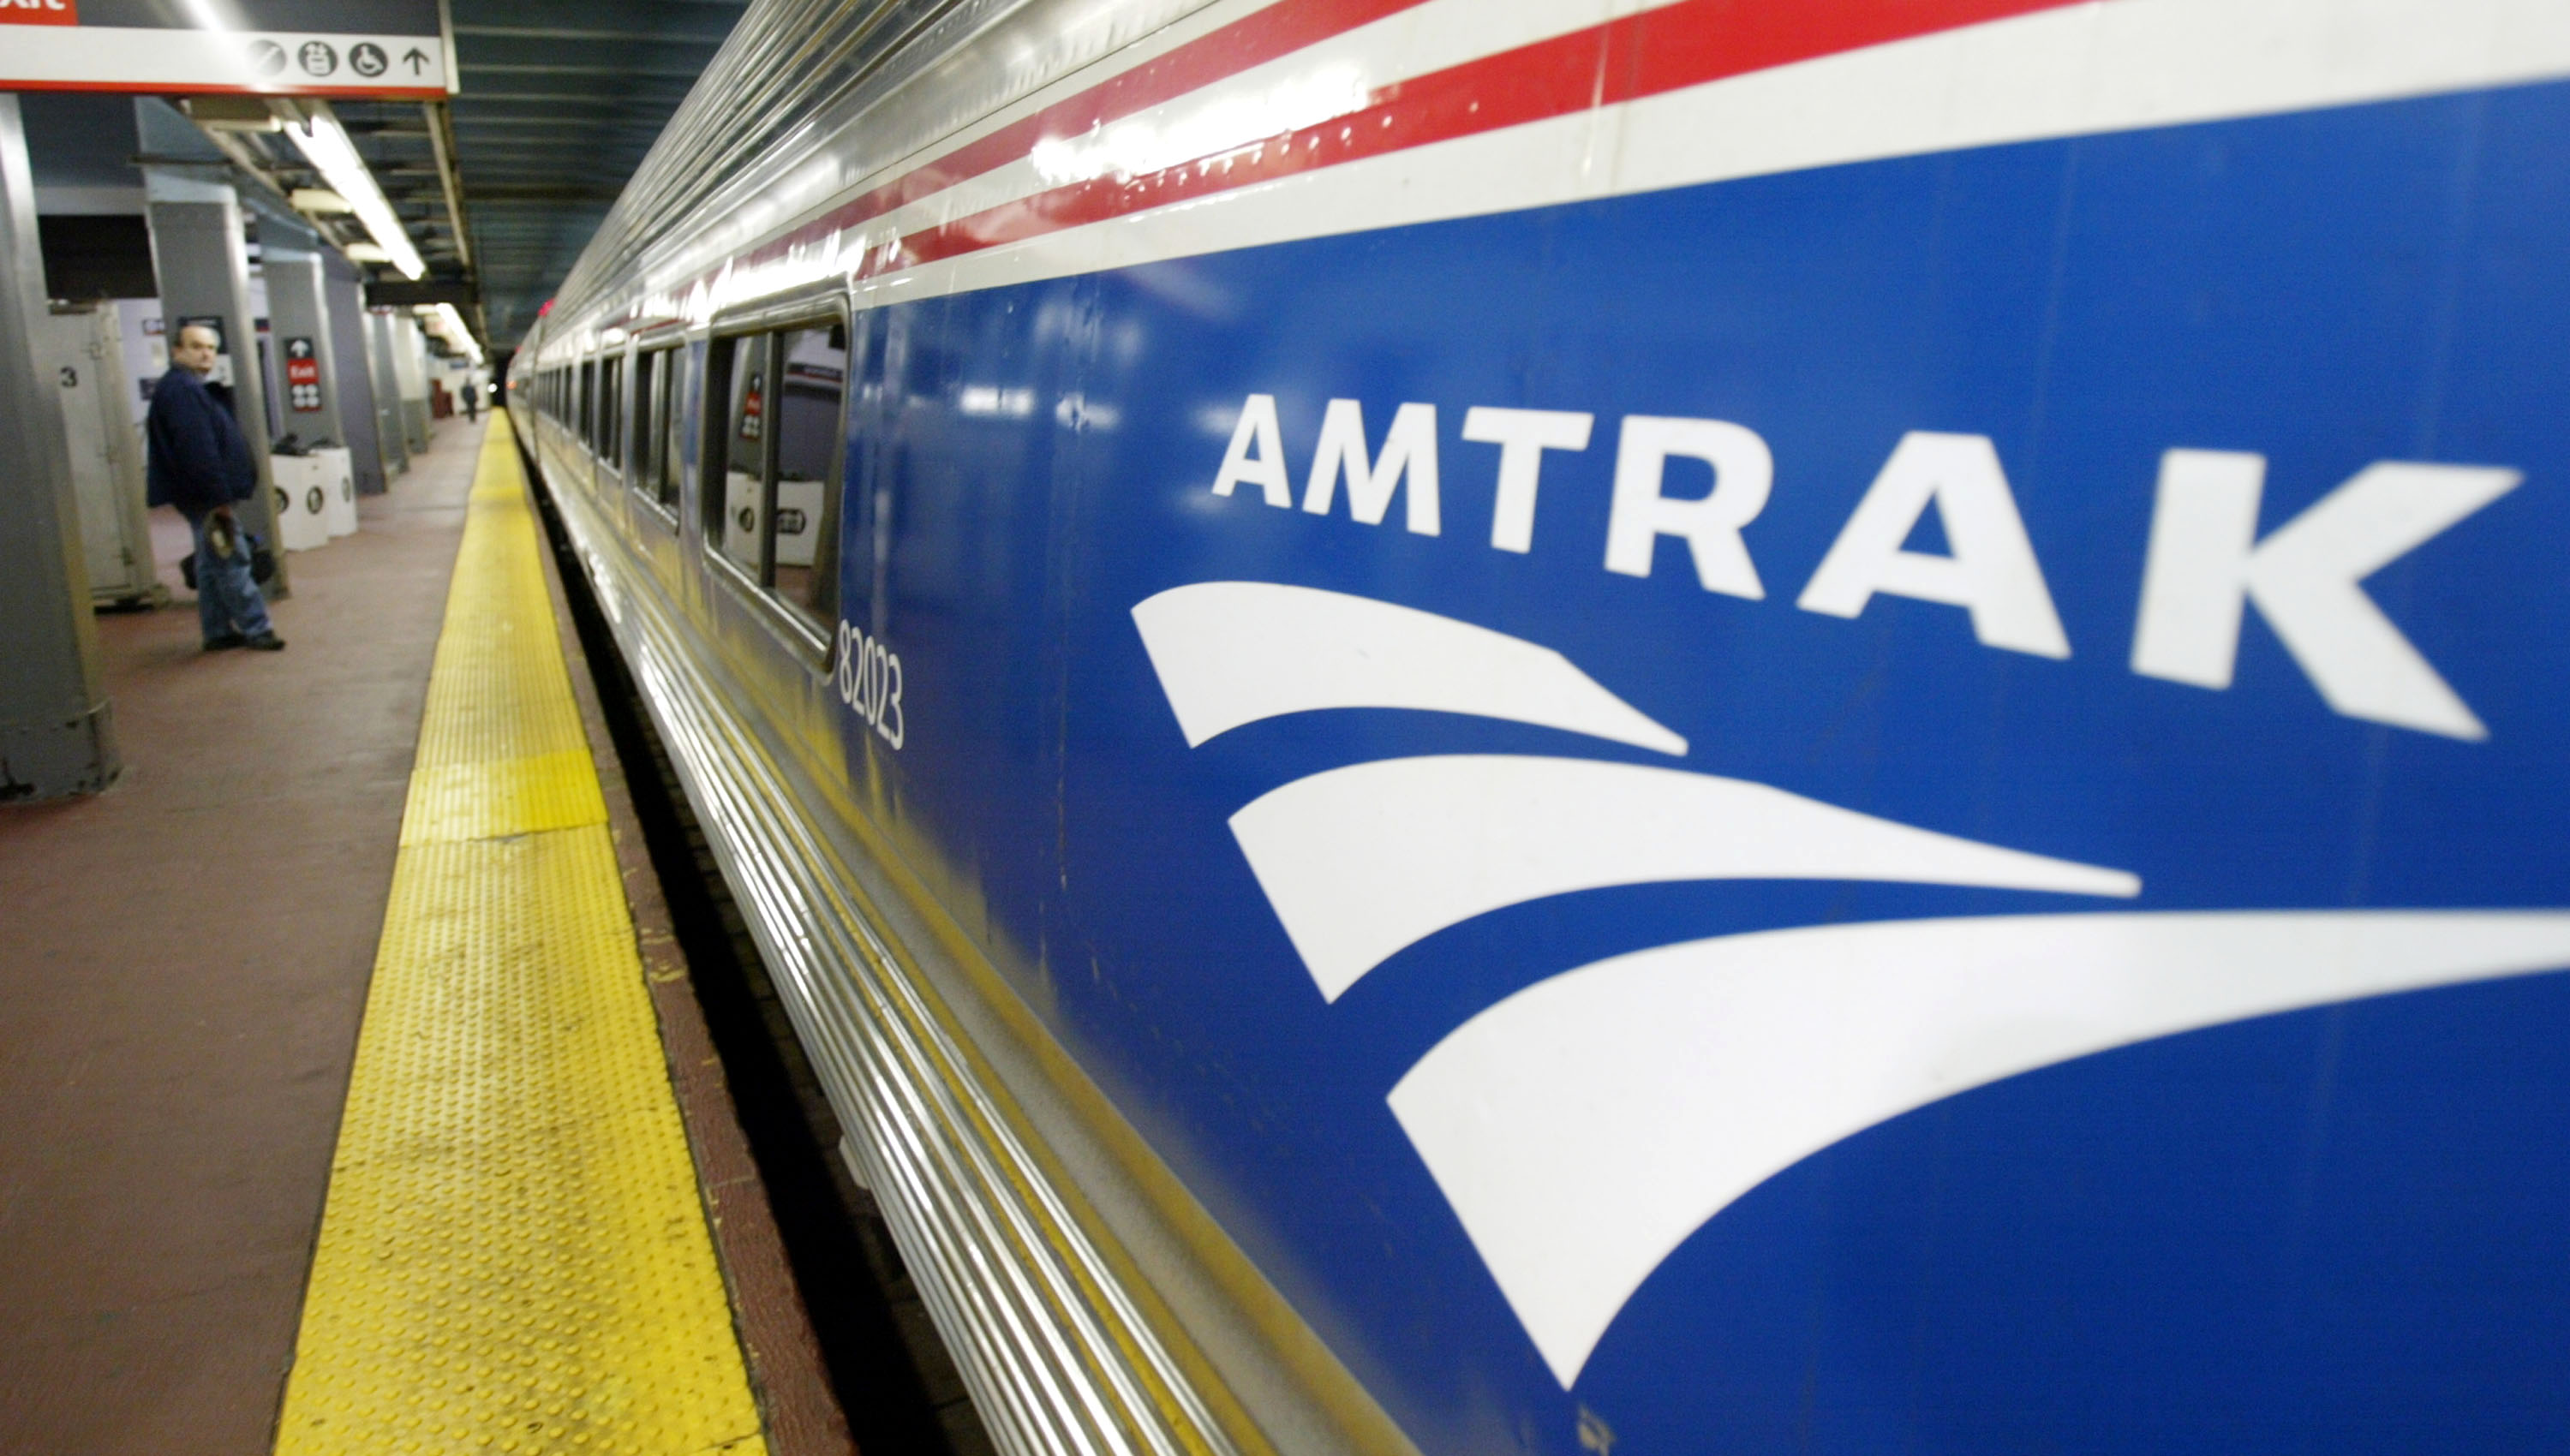 Talks emerge about Amtrak passenger rail linking Atlanta to Nashville. All aboard?